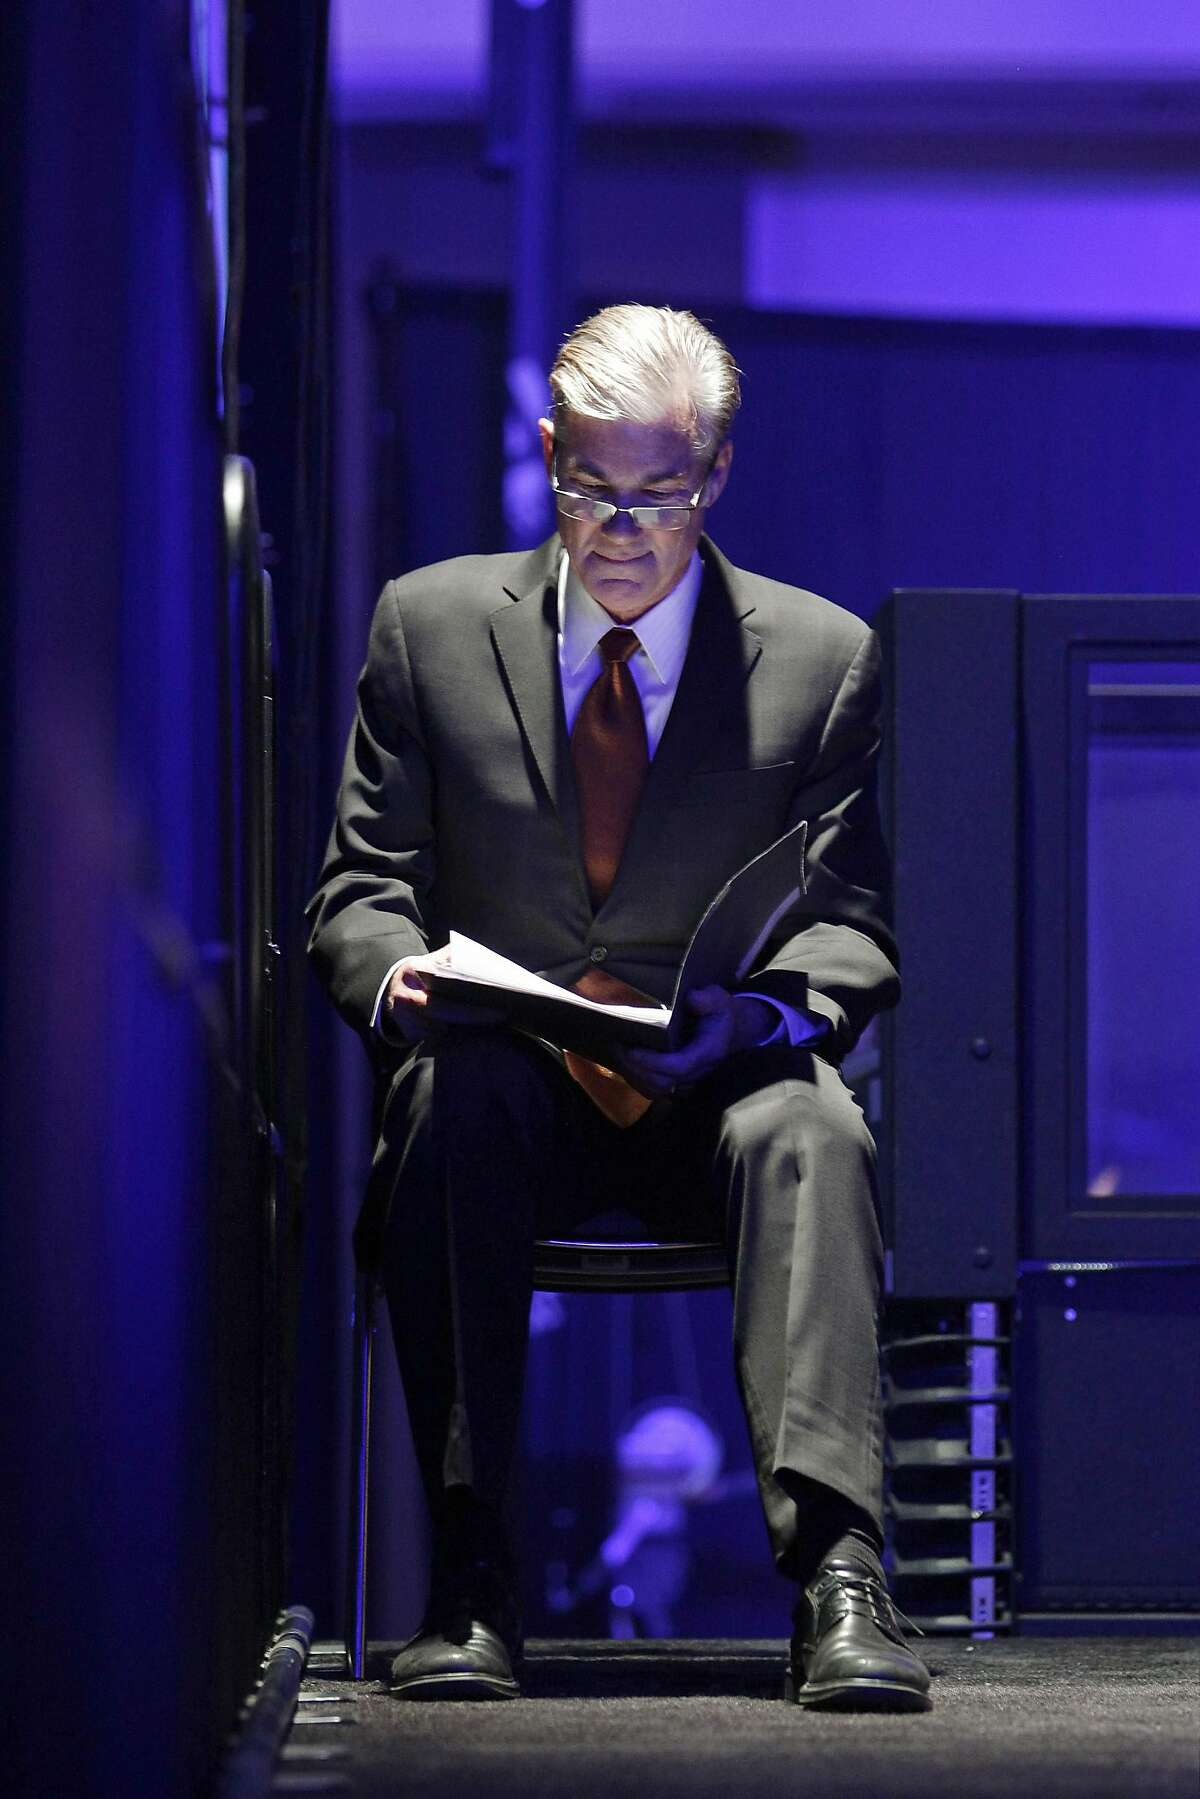 Superintendent of Public Instruction Tom Torlakson prepares to go onstage to speak at the 2014 California Democrats State Convention at the Los Angeles Convention Center March 8, 2014. REUTERS/David McNew (UNITED STATES - Tags: POLITICS)